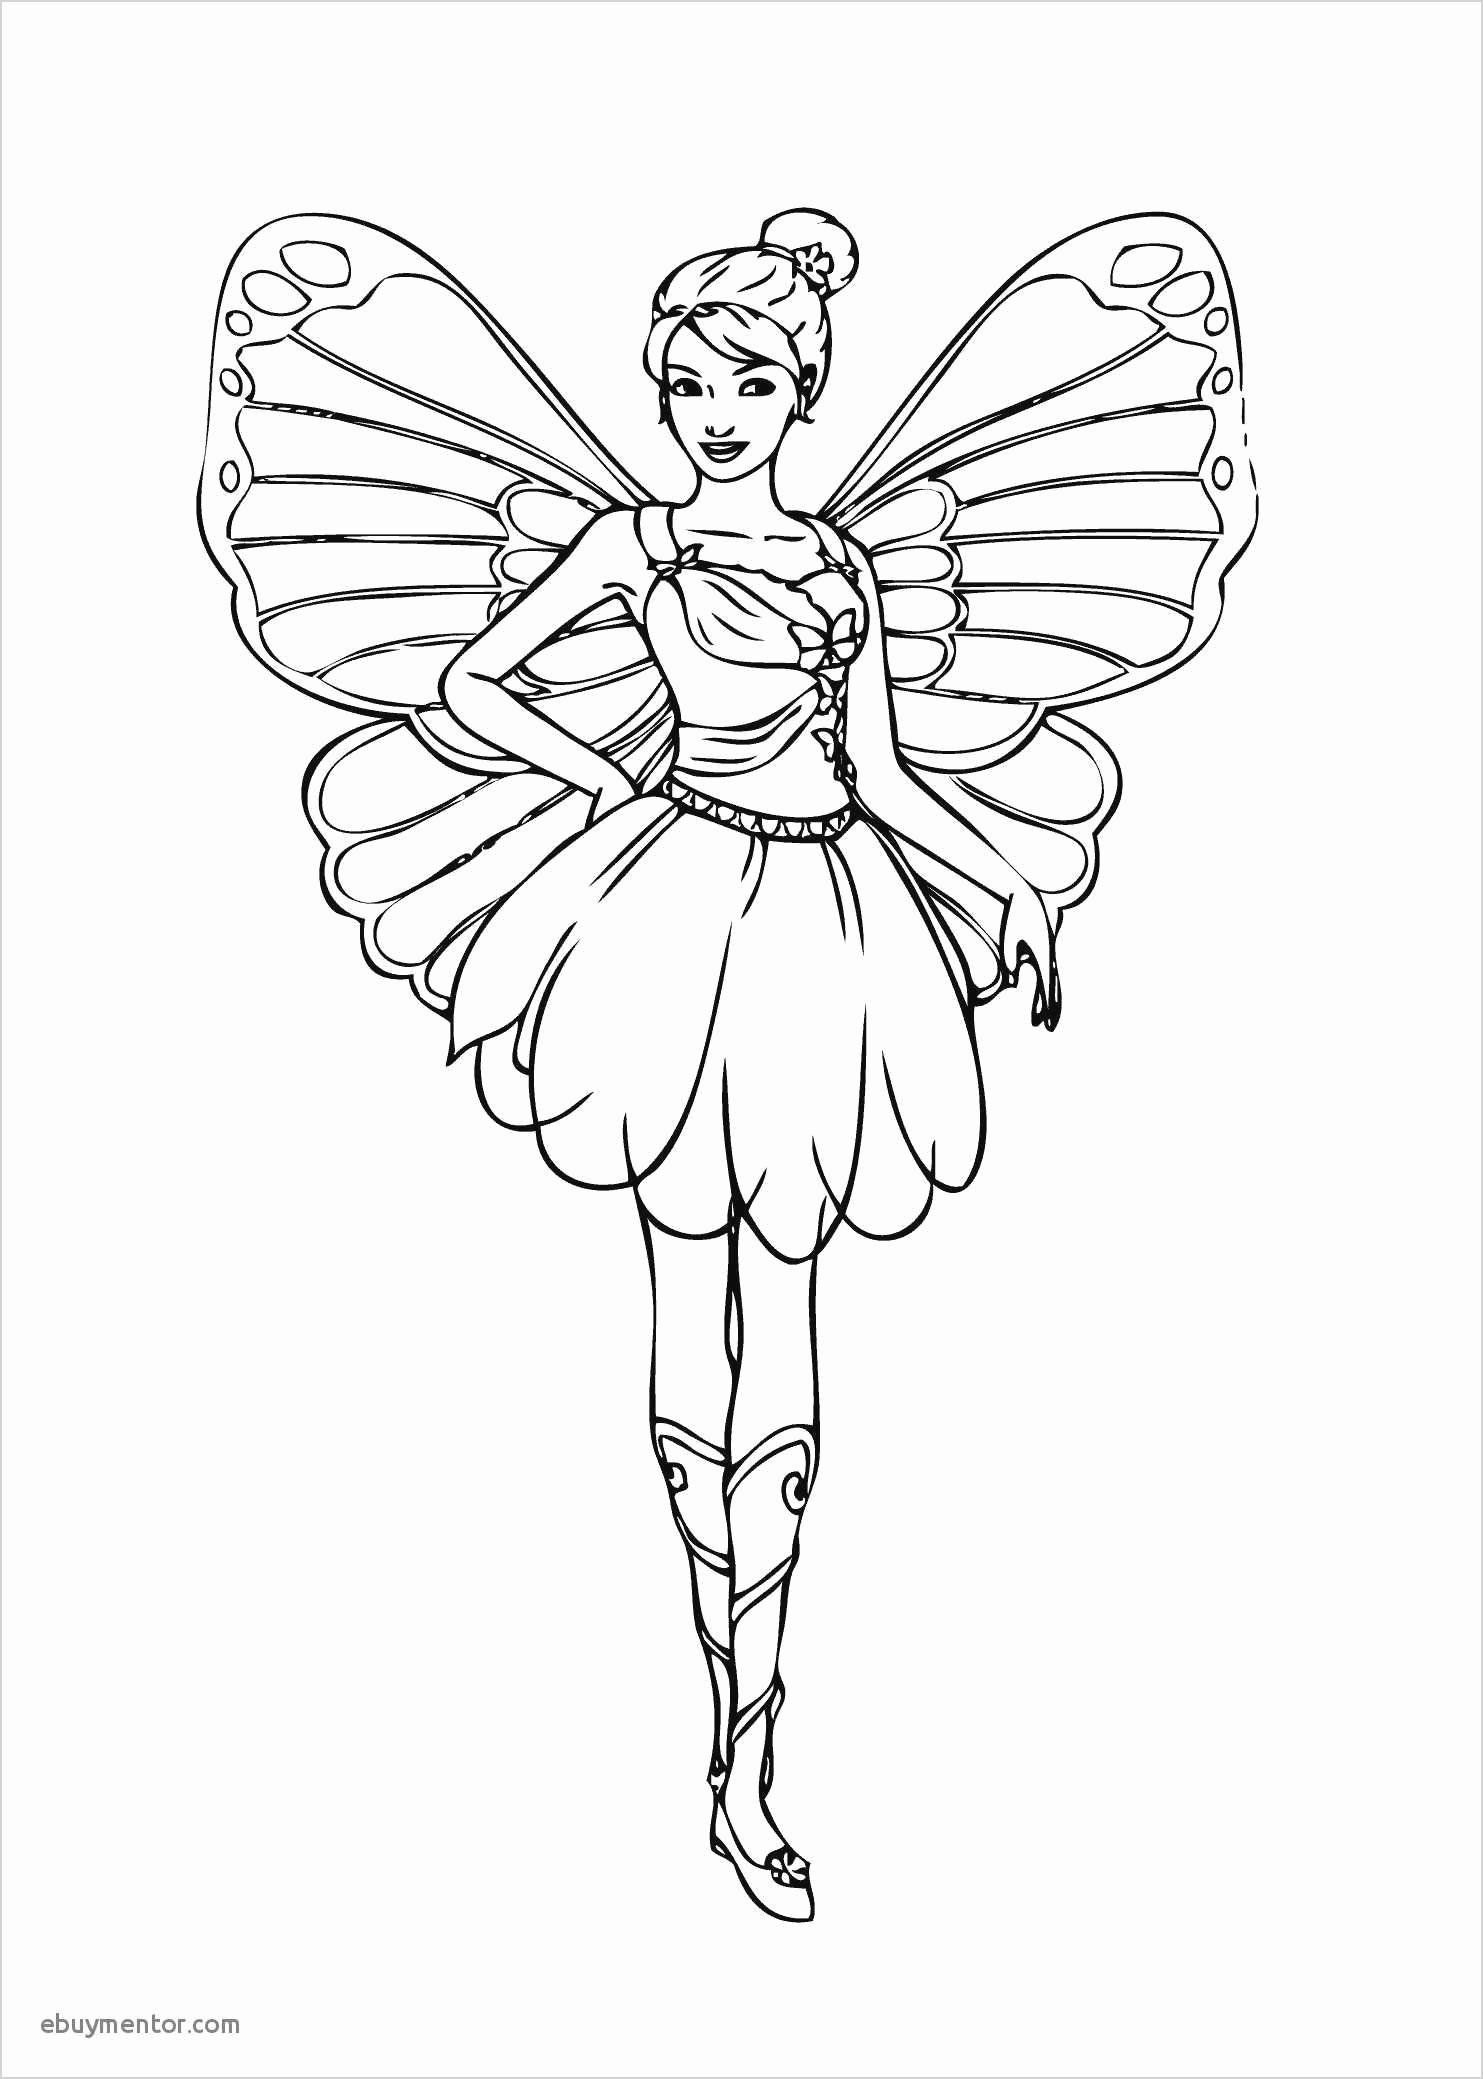 Free Flower Coloring Sheets Best Of Fresh Fairy And Flower Coloring Pages Howtobeaweso Fairy Coloring Book Superhero Coloring Pages Unicorn Coloring Pages